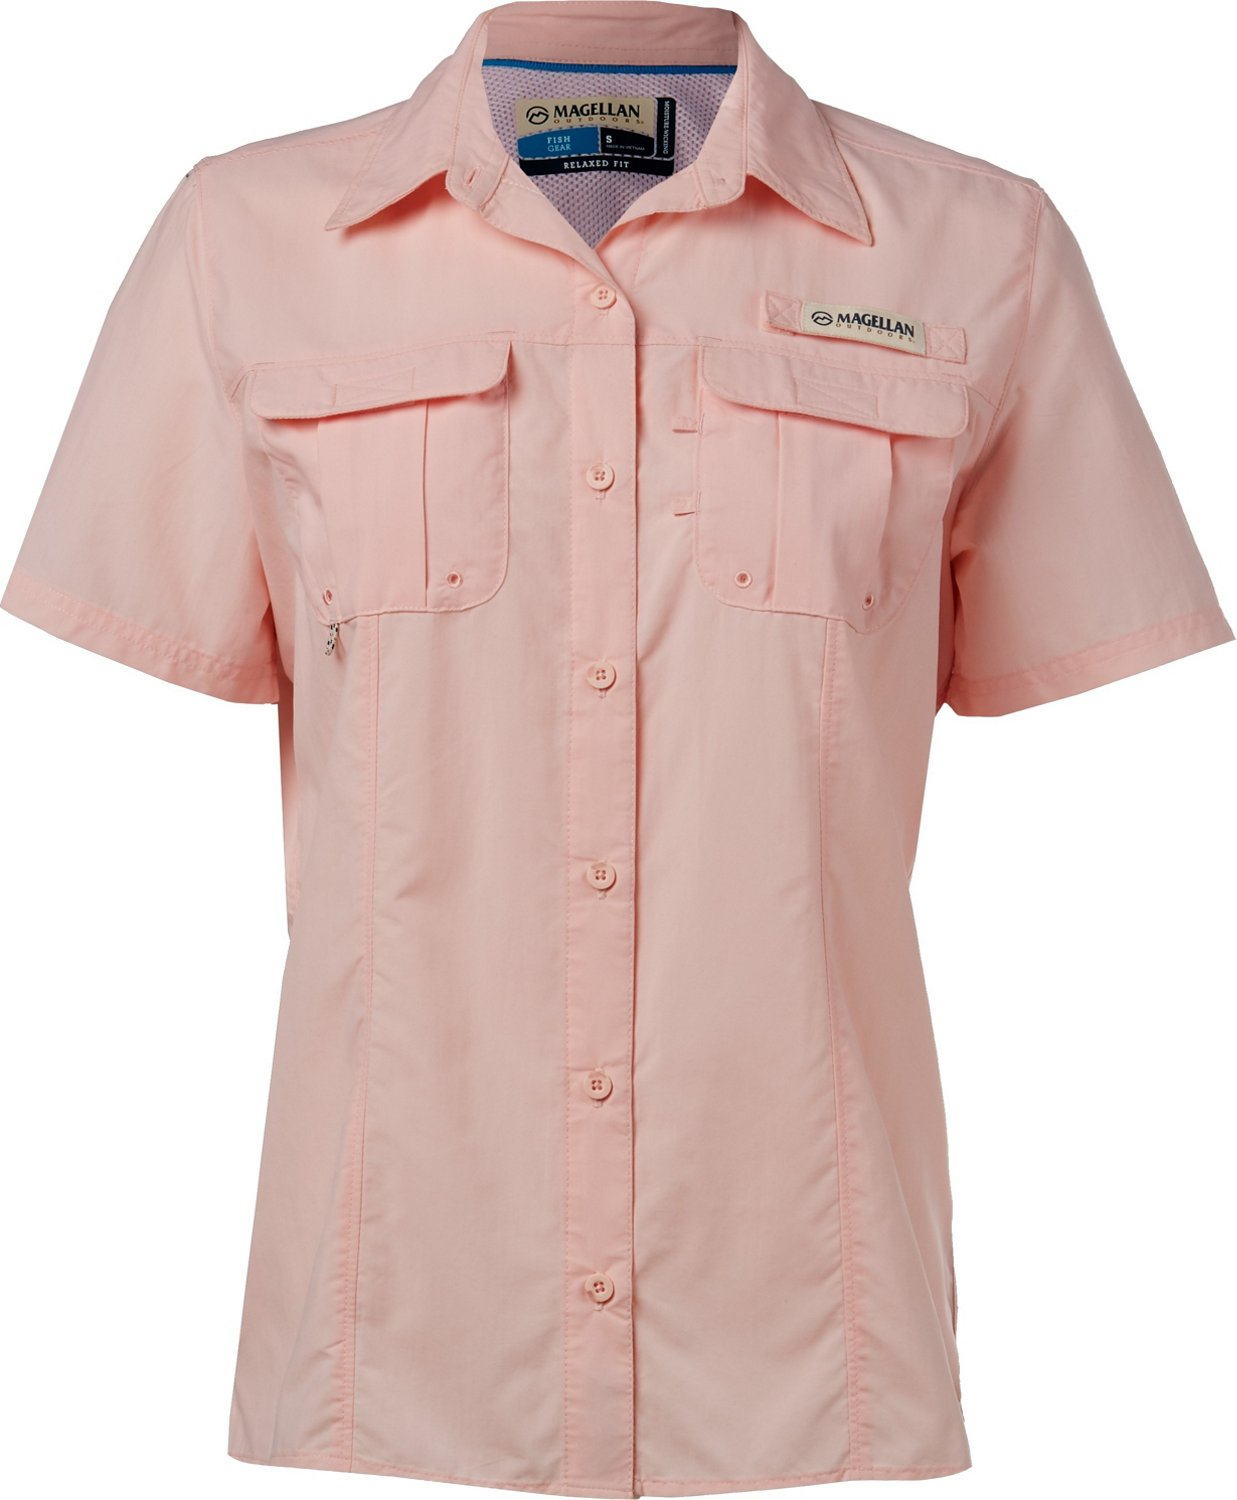 7603a7ac Display product reviews for Magellan Outdoors Women's Laguna Madre Fishing  Shirt